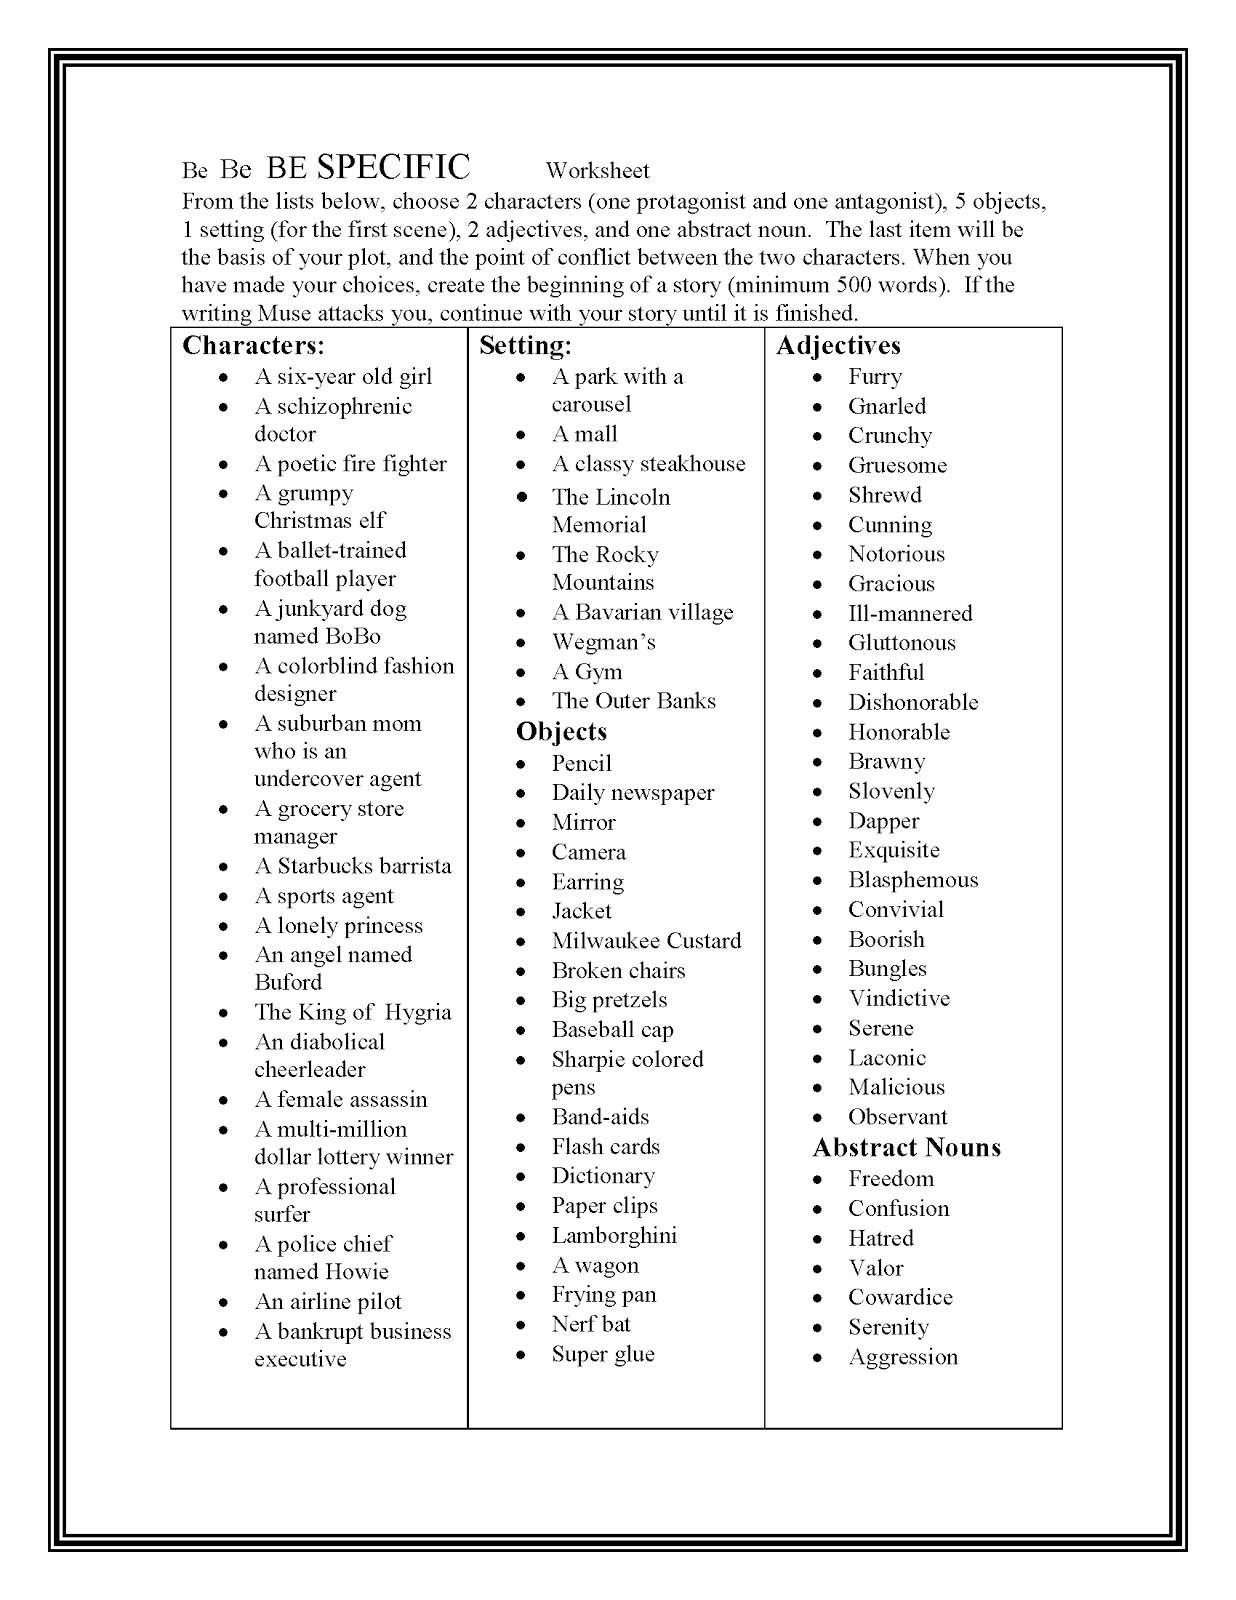 Free Worksheet Grammar Worksheets For High School resume worksheet high school teach it write writing grammar amp vocabulary products